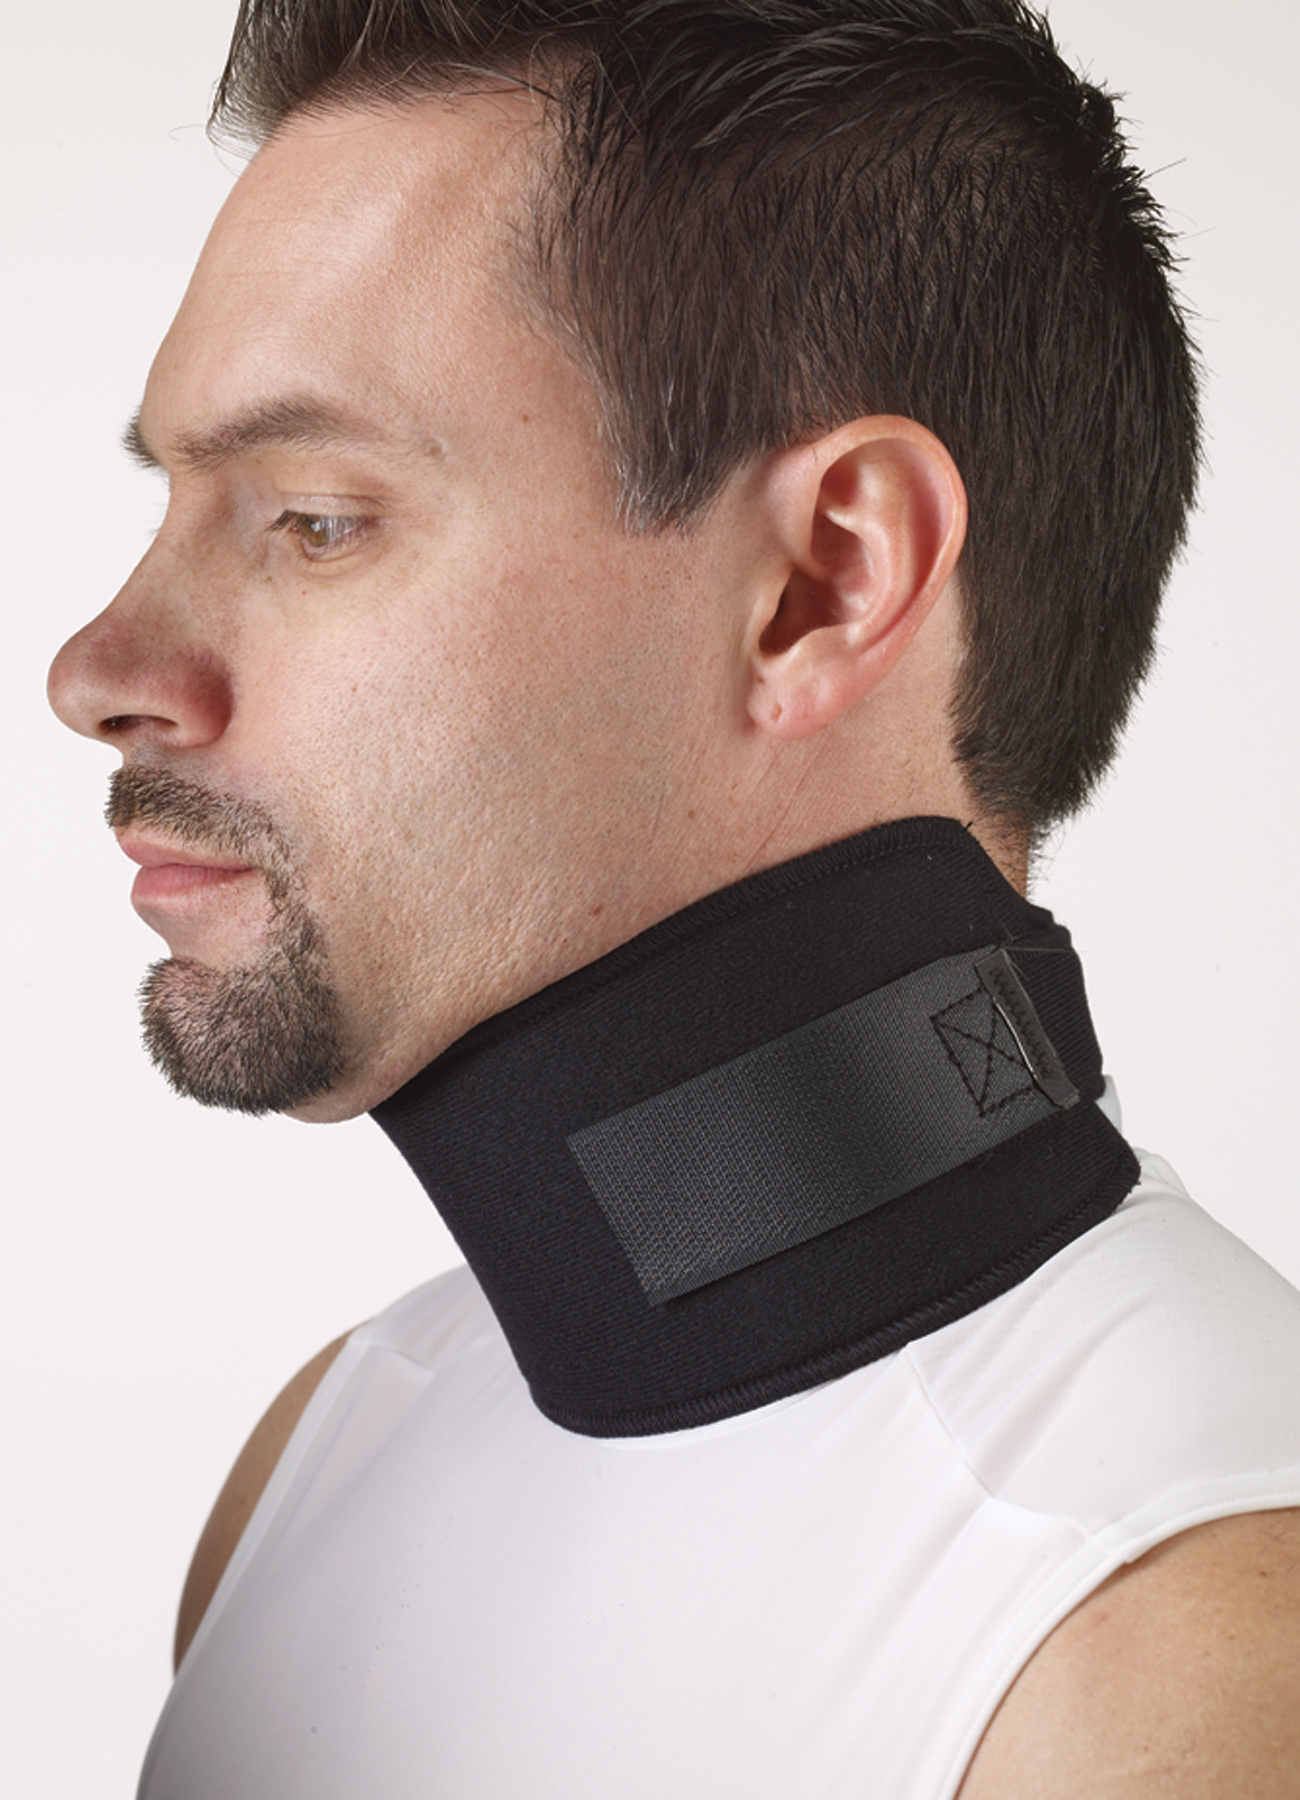 Cryotherm Neck Wrap